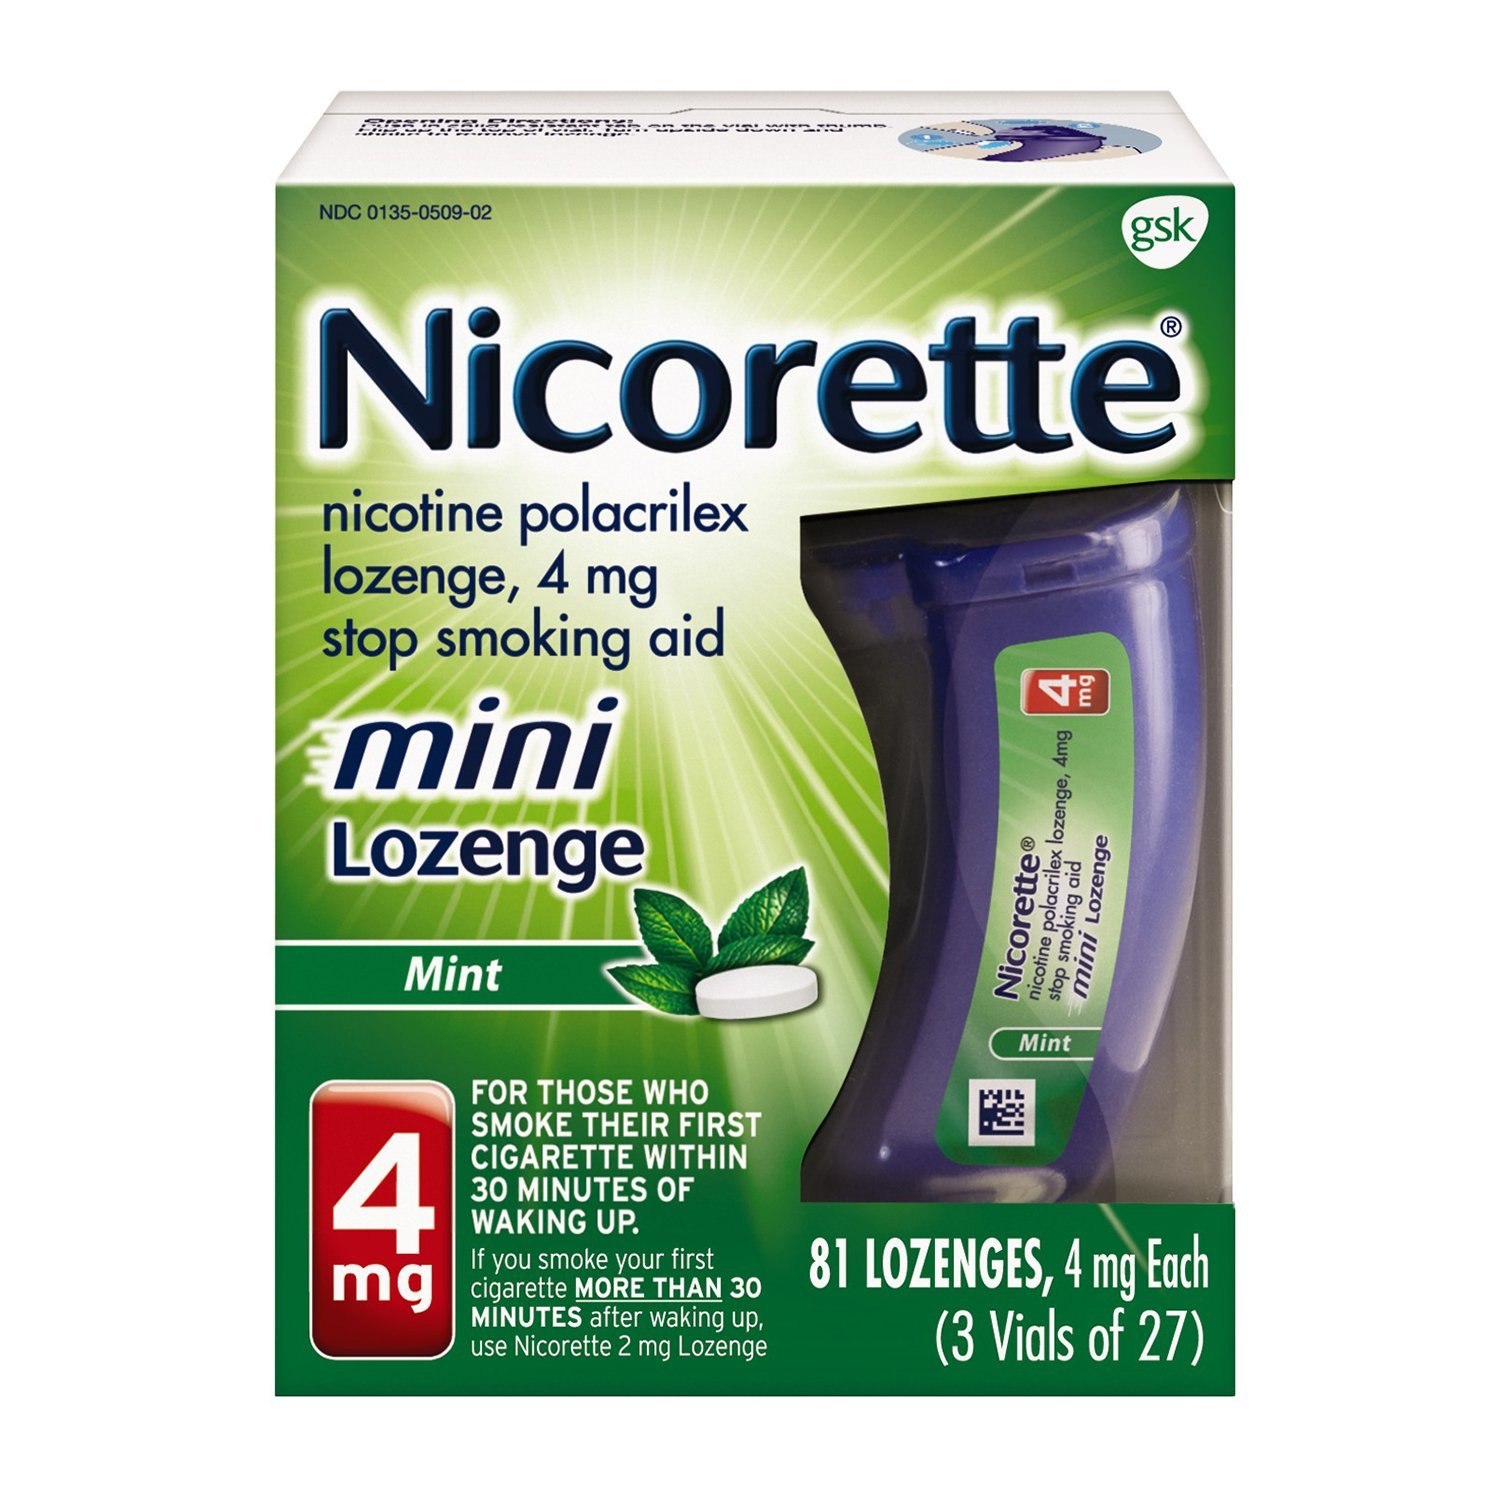 Mini Nicorette Nicotine Lozenge Stop Smoking Aid, 4 mg, Mint Flavored Smoking Cessation Product, 81 Count by Nicorette